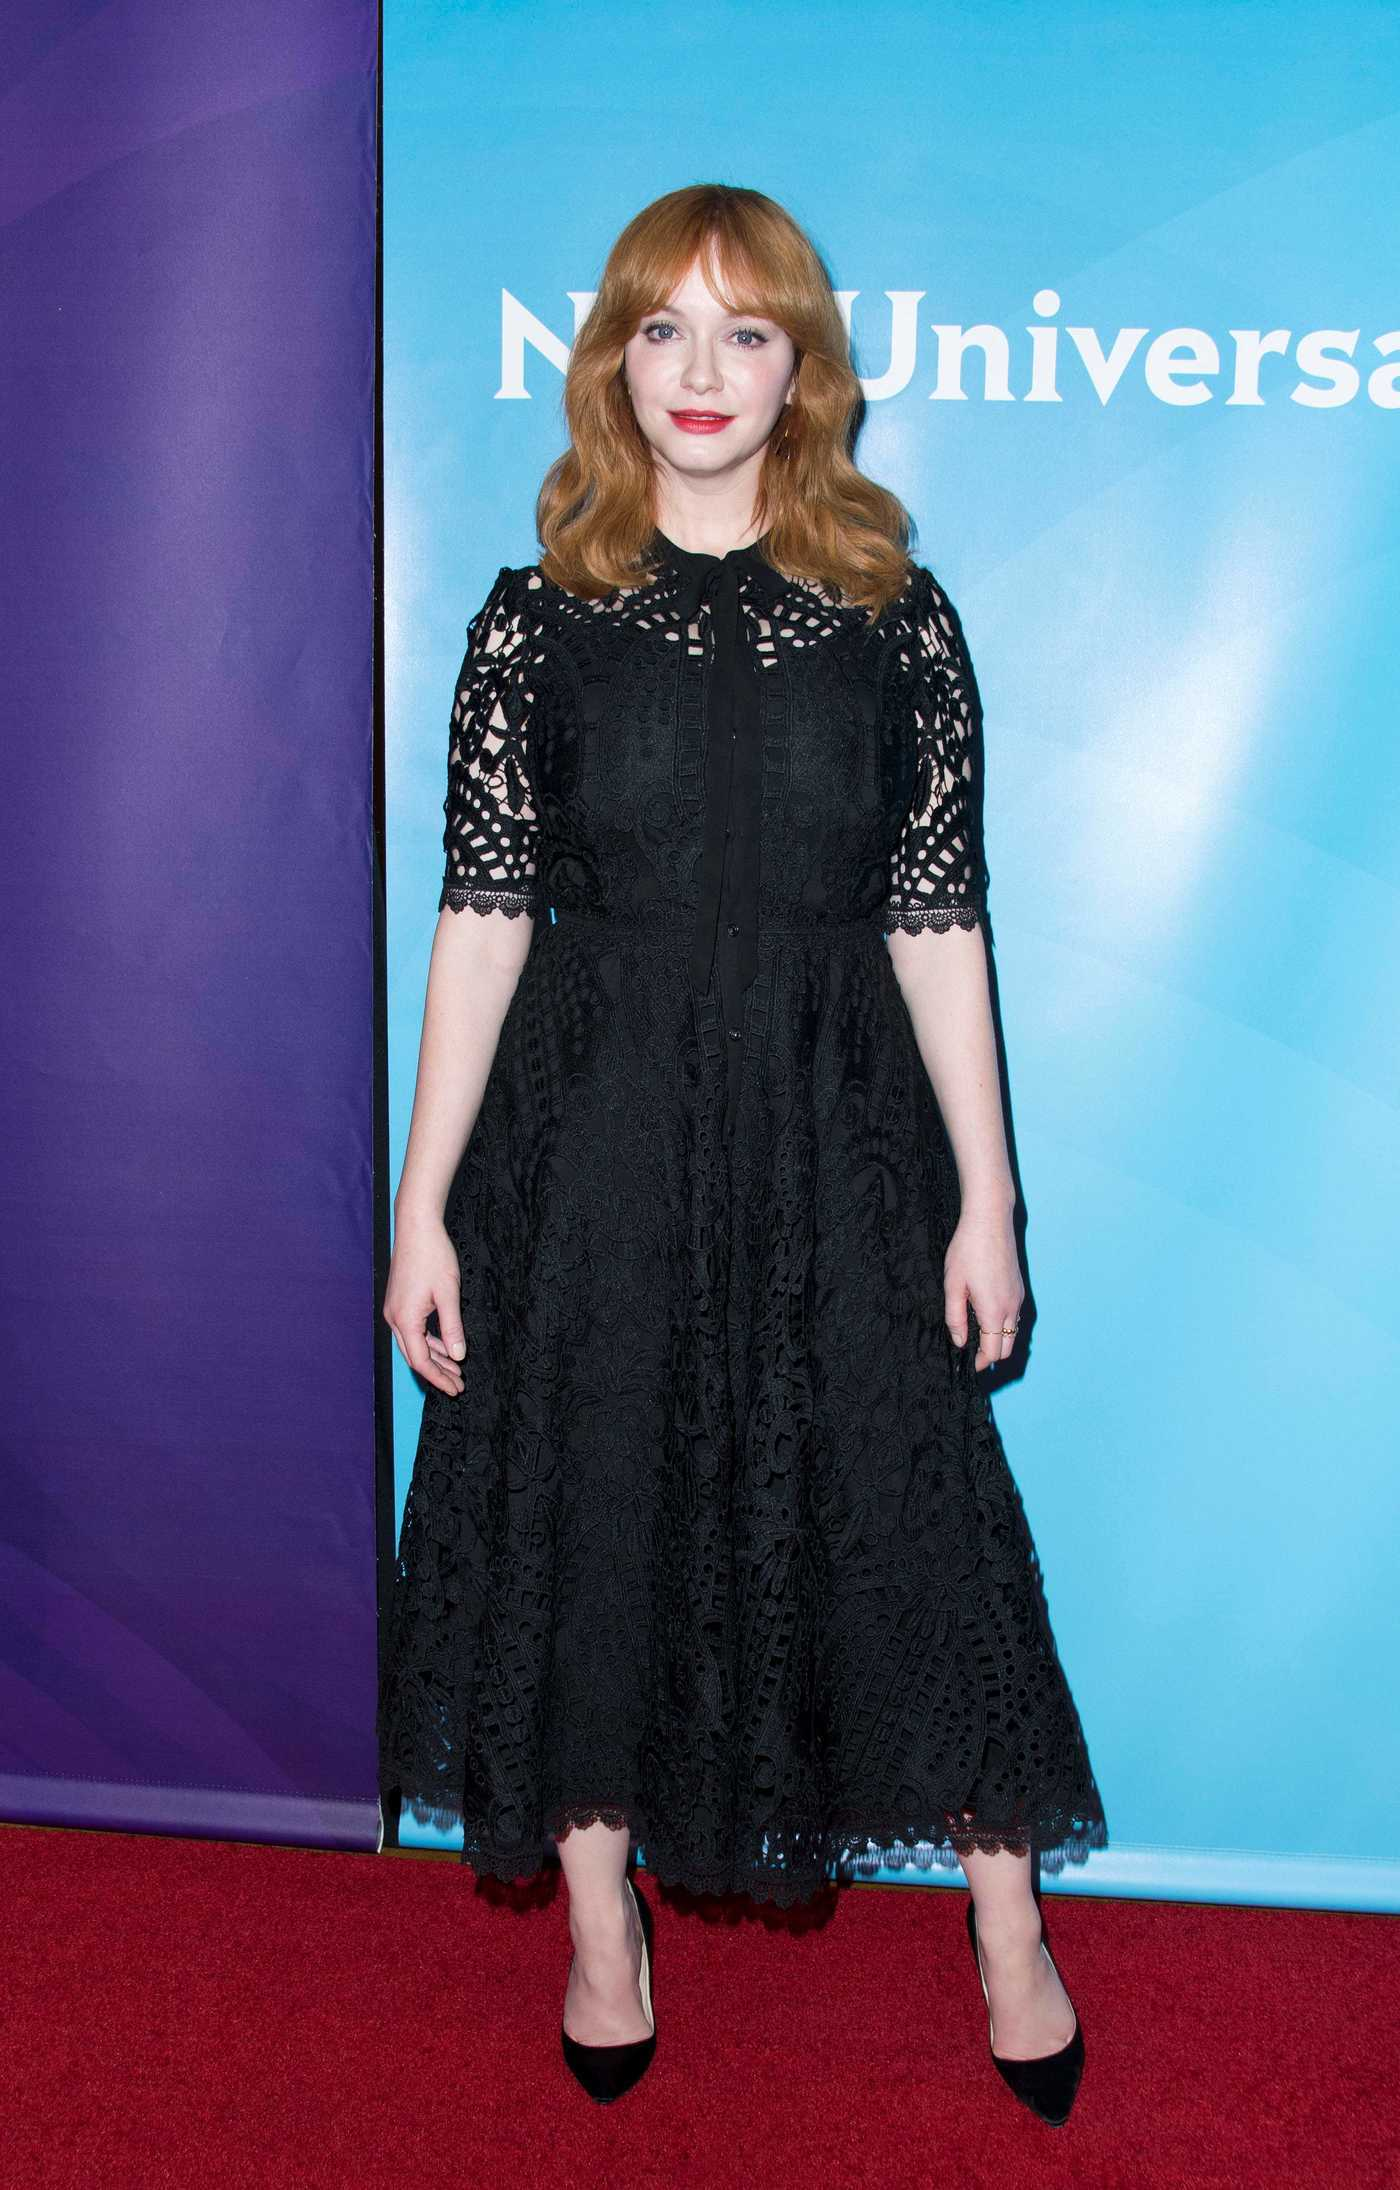 Christina Hendricks at NBC Universal TCA Winter Press Tour in Pasadena 01/09/2018